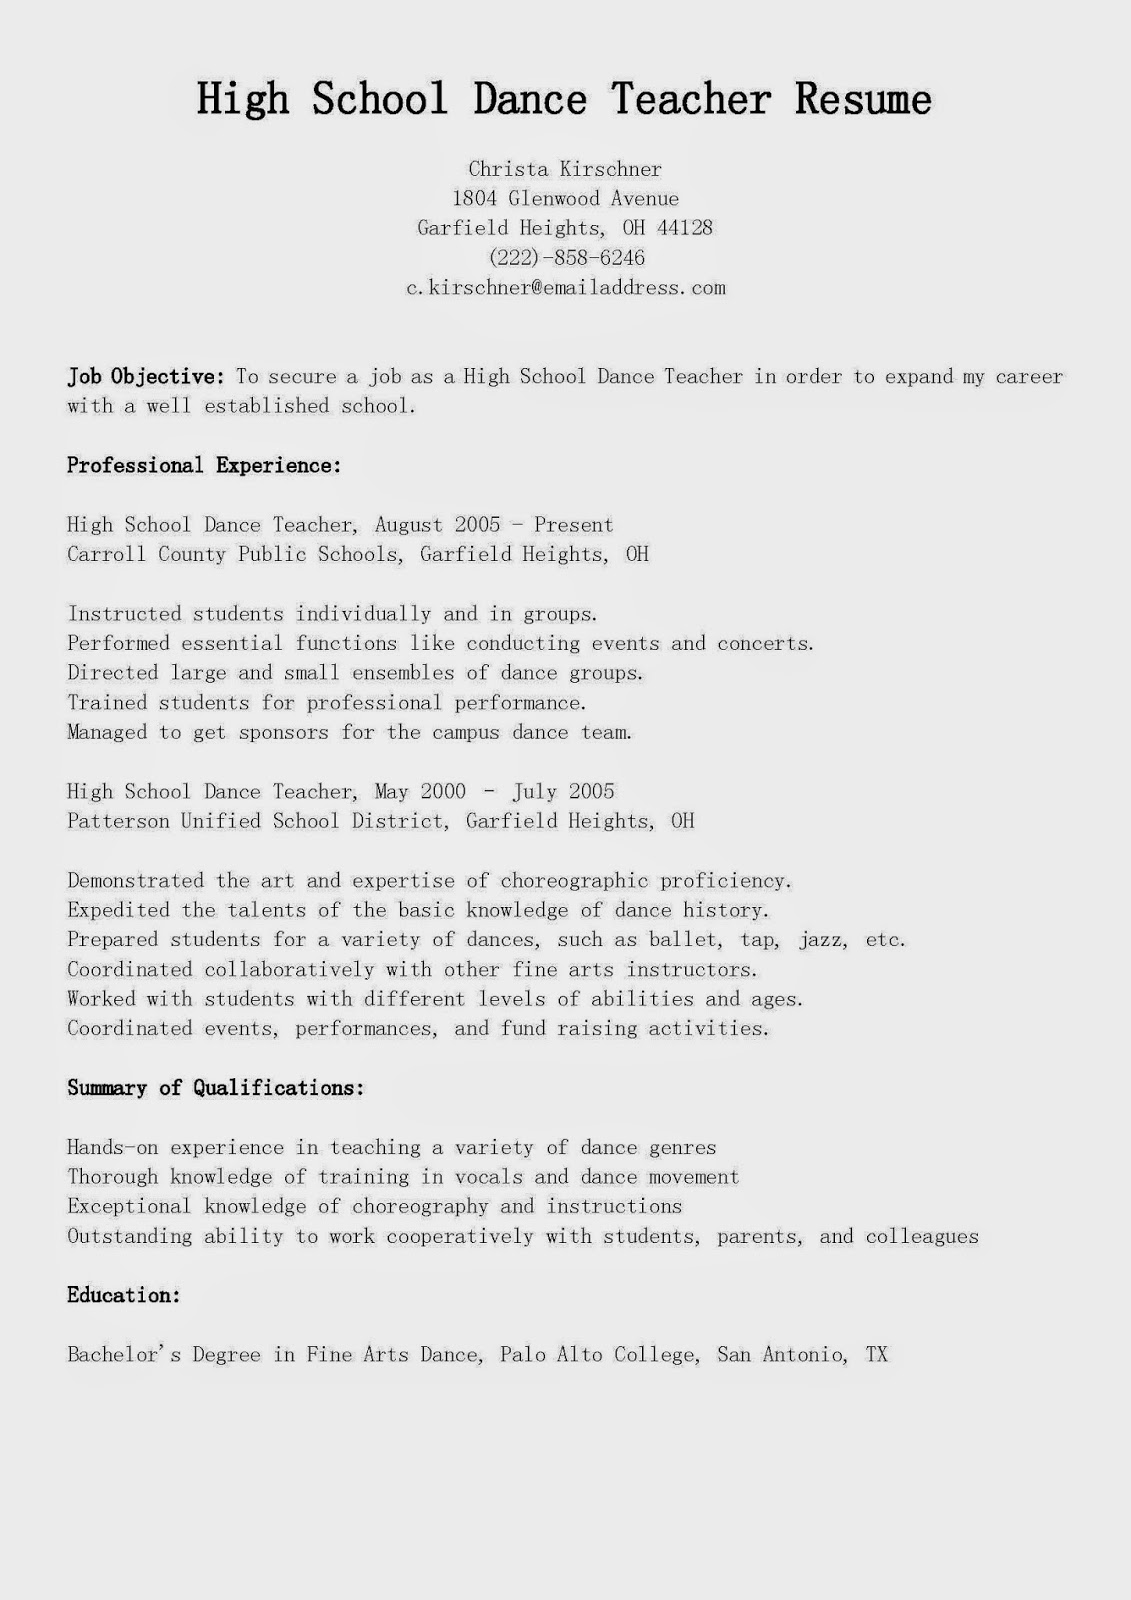 sample resume music education resume maker create professional sample resume music education sample nursing resume best sample resumes resume samples high school dance teacher